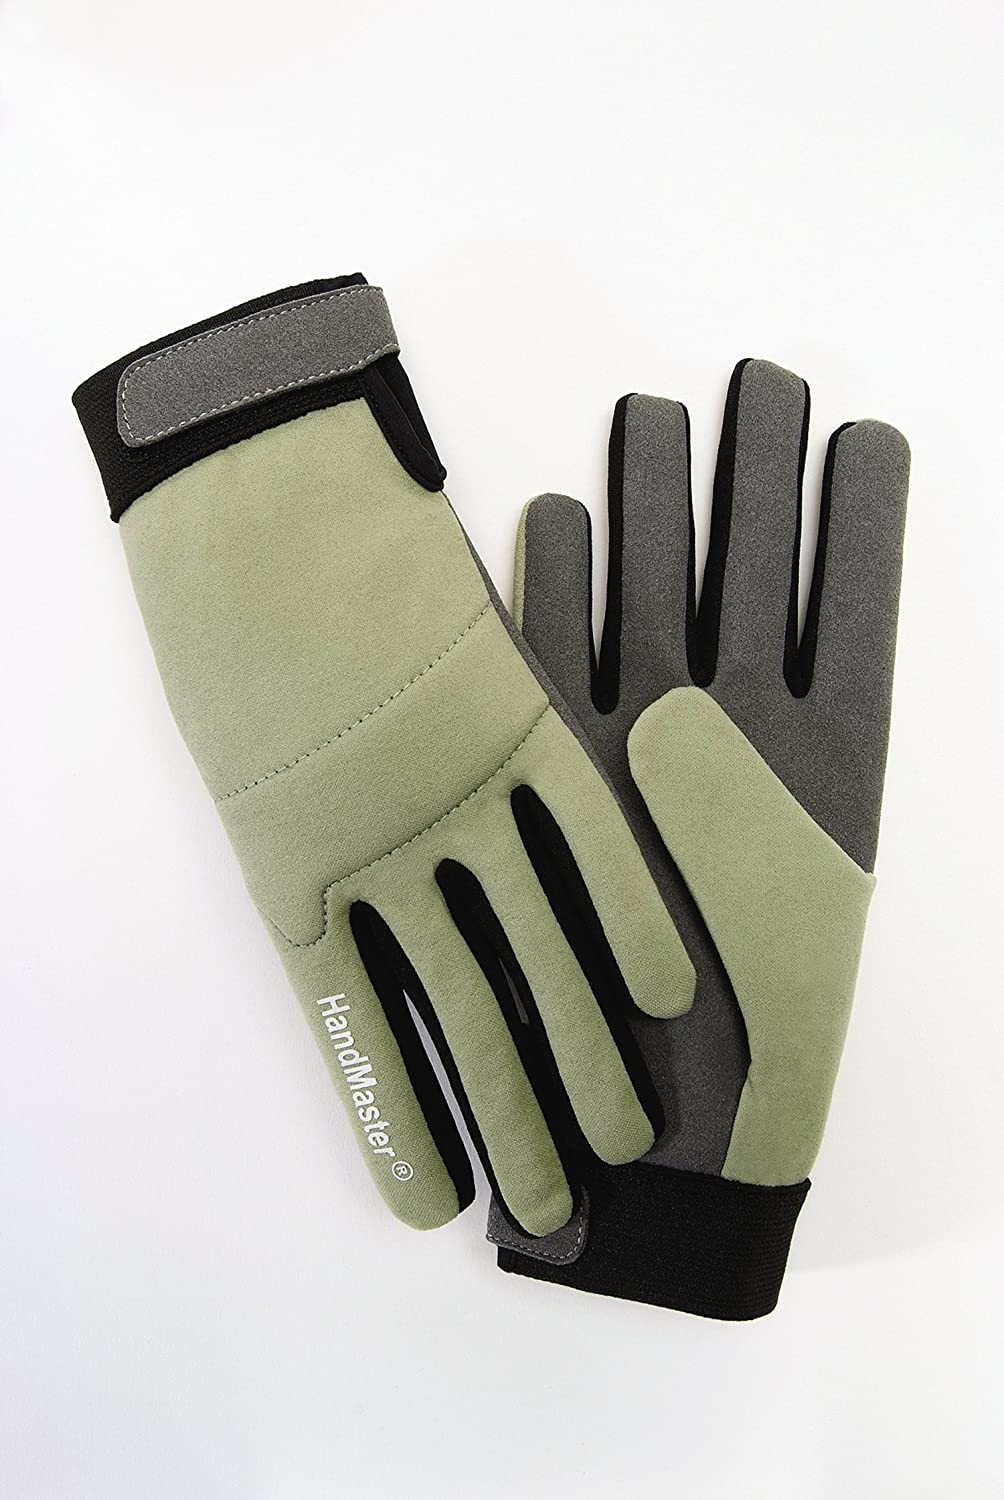 Magid G251VT Simply Pastel Synthetic Leather Heavy Duty Gardening Glove for Women, Small